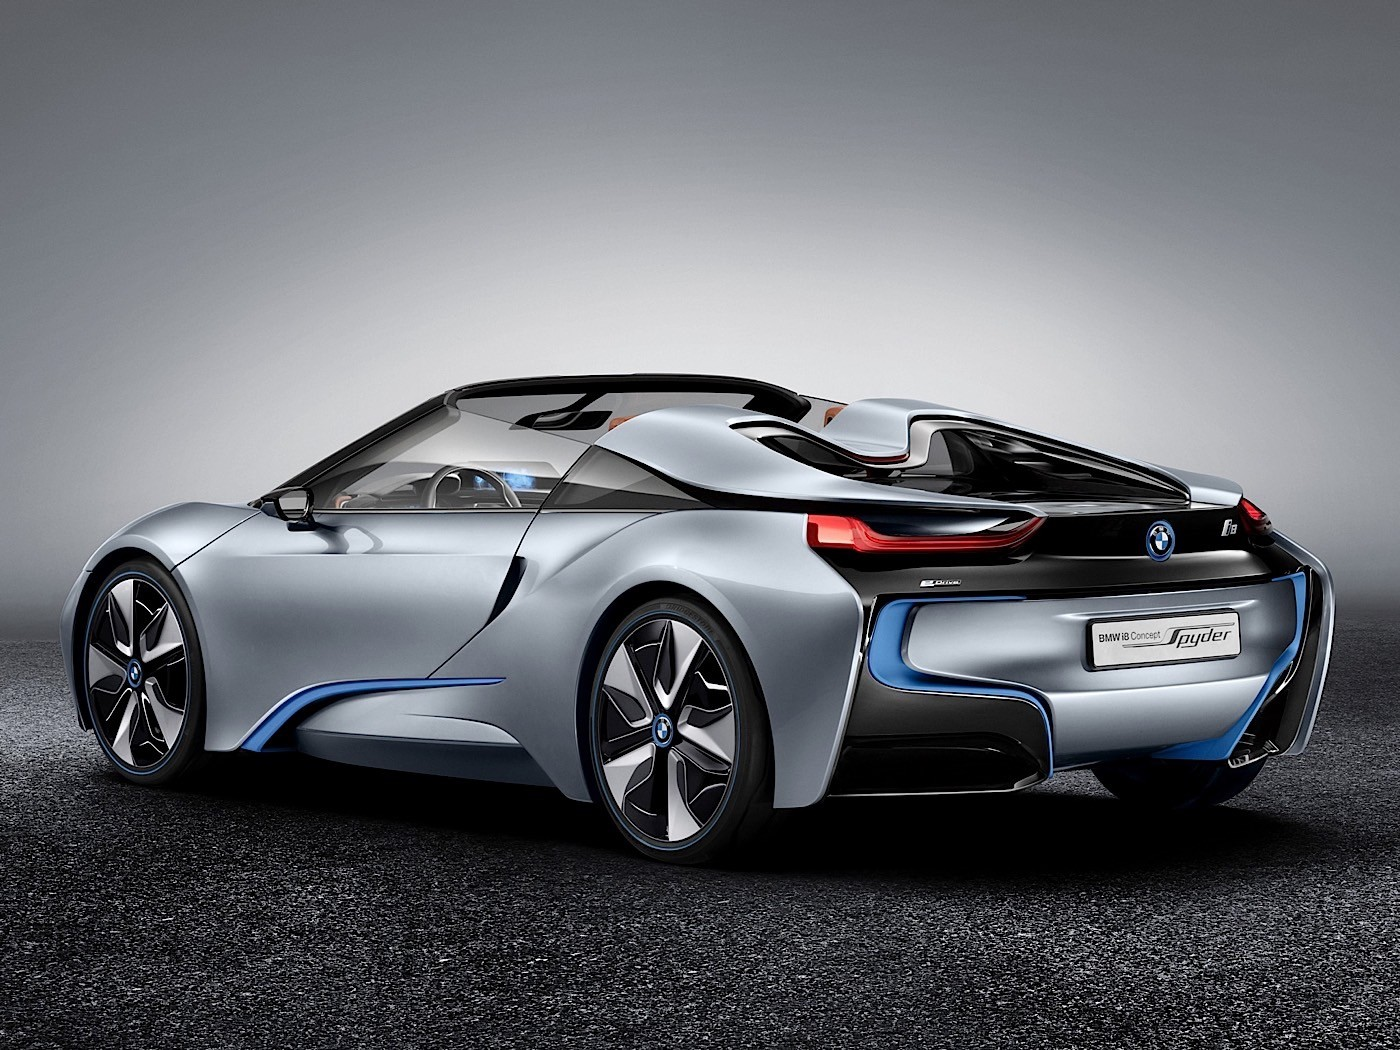 Bmw I8 Roadster Is Officially On The Way Along With A New I3